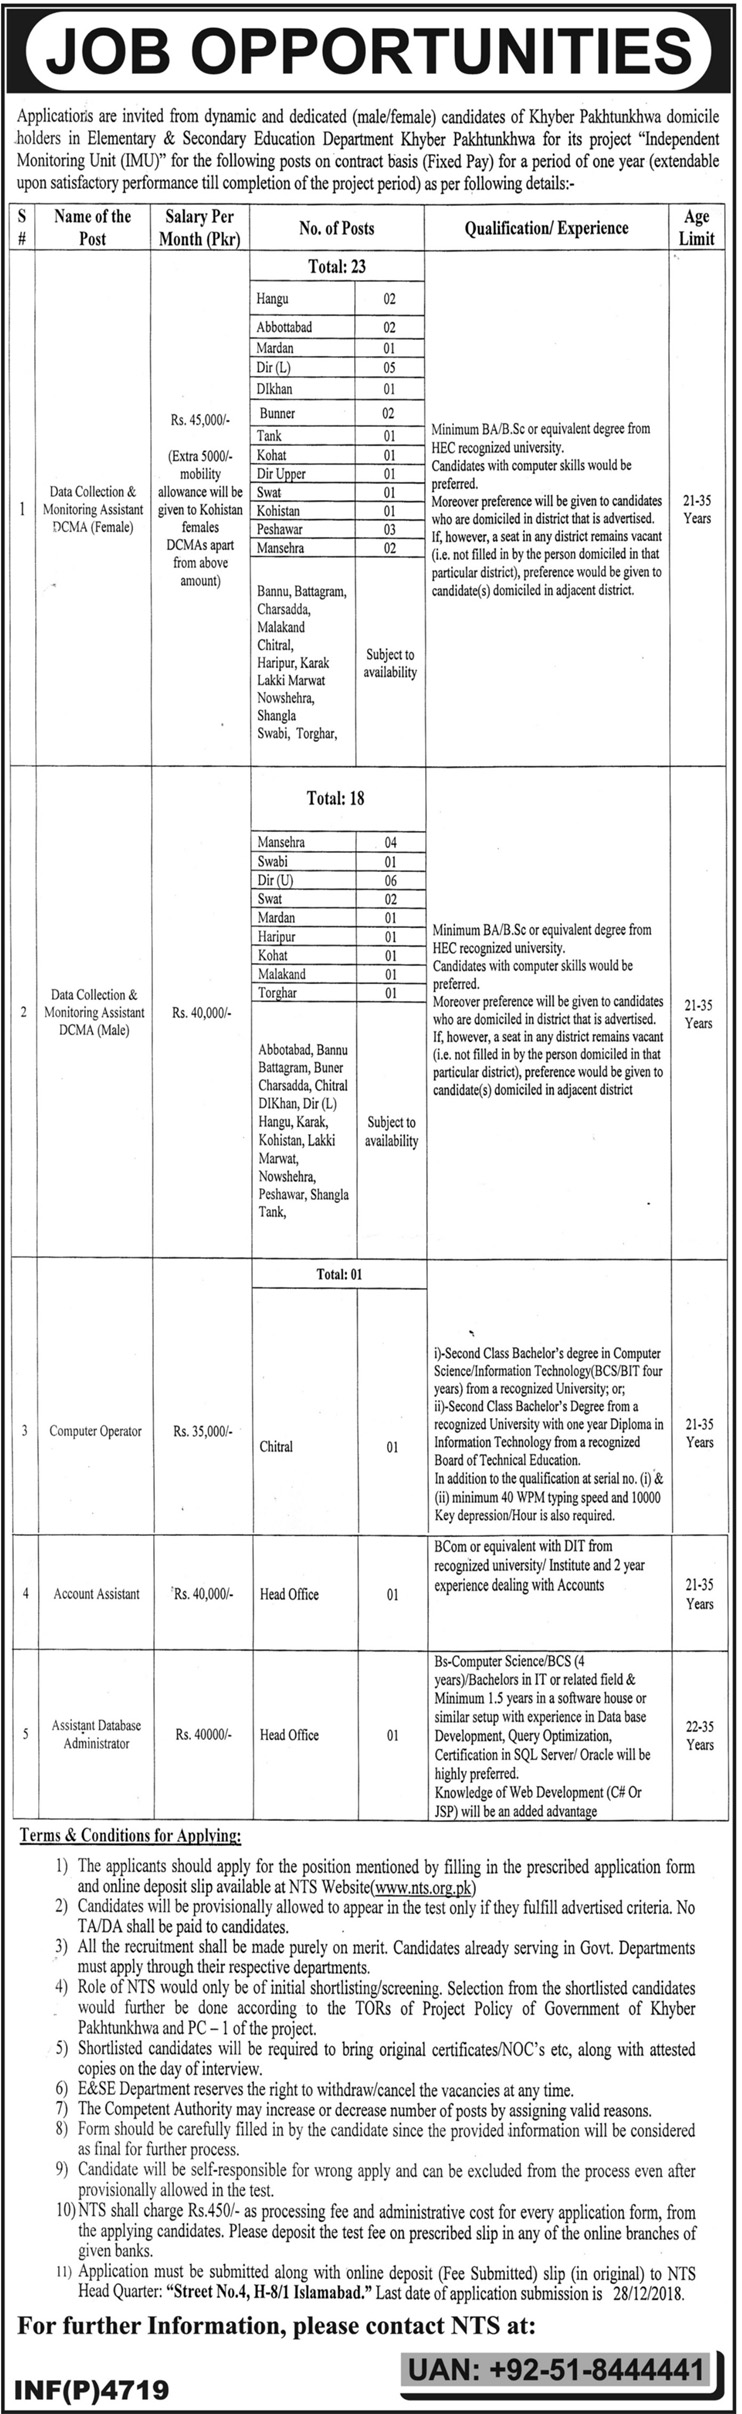 NTS Elementary & Secondary Education Department Jobs 2019 Application Form